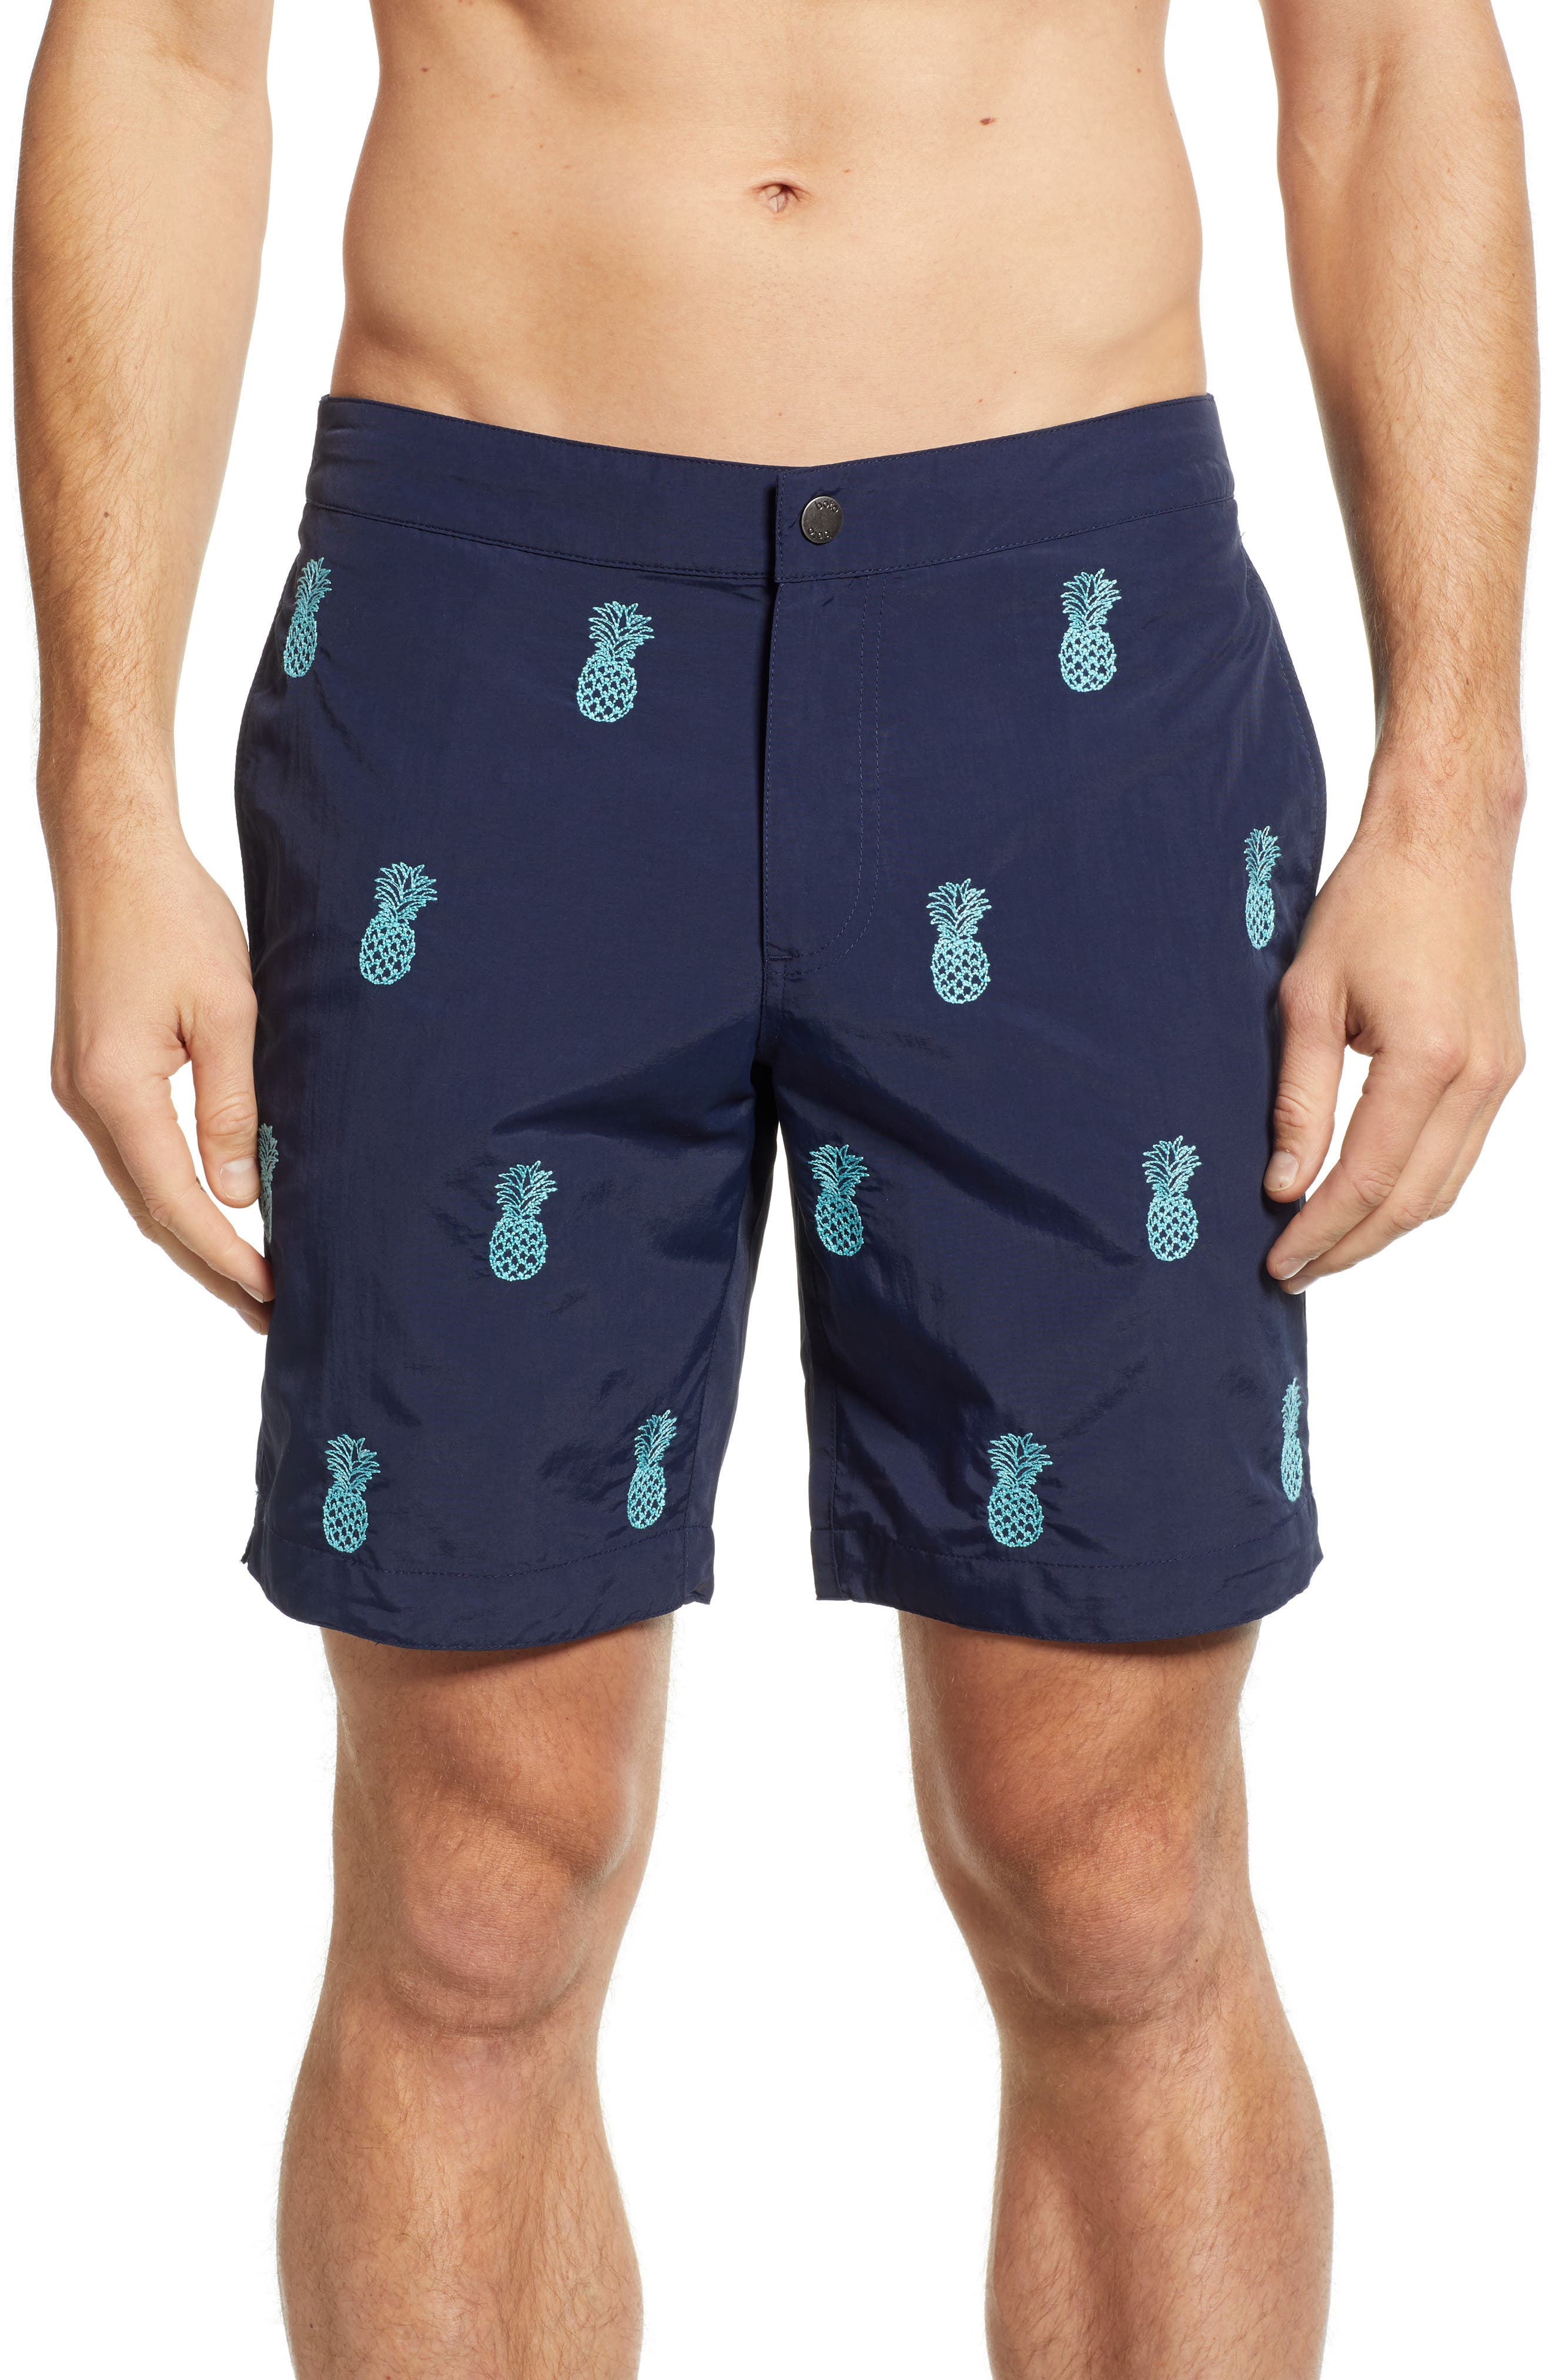 Aruba Embroidered 8.5 Inch Swim Trunks,                         Main,                         color, NAVY EMBROIDERED PINEAPPLES